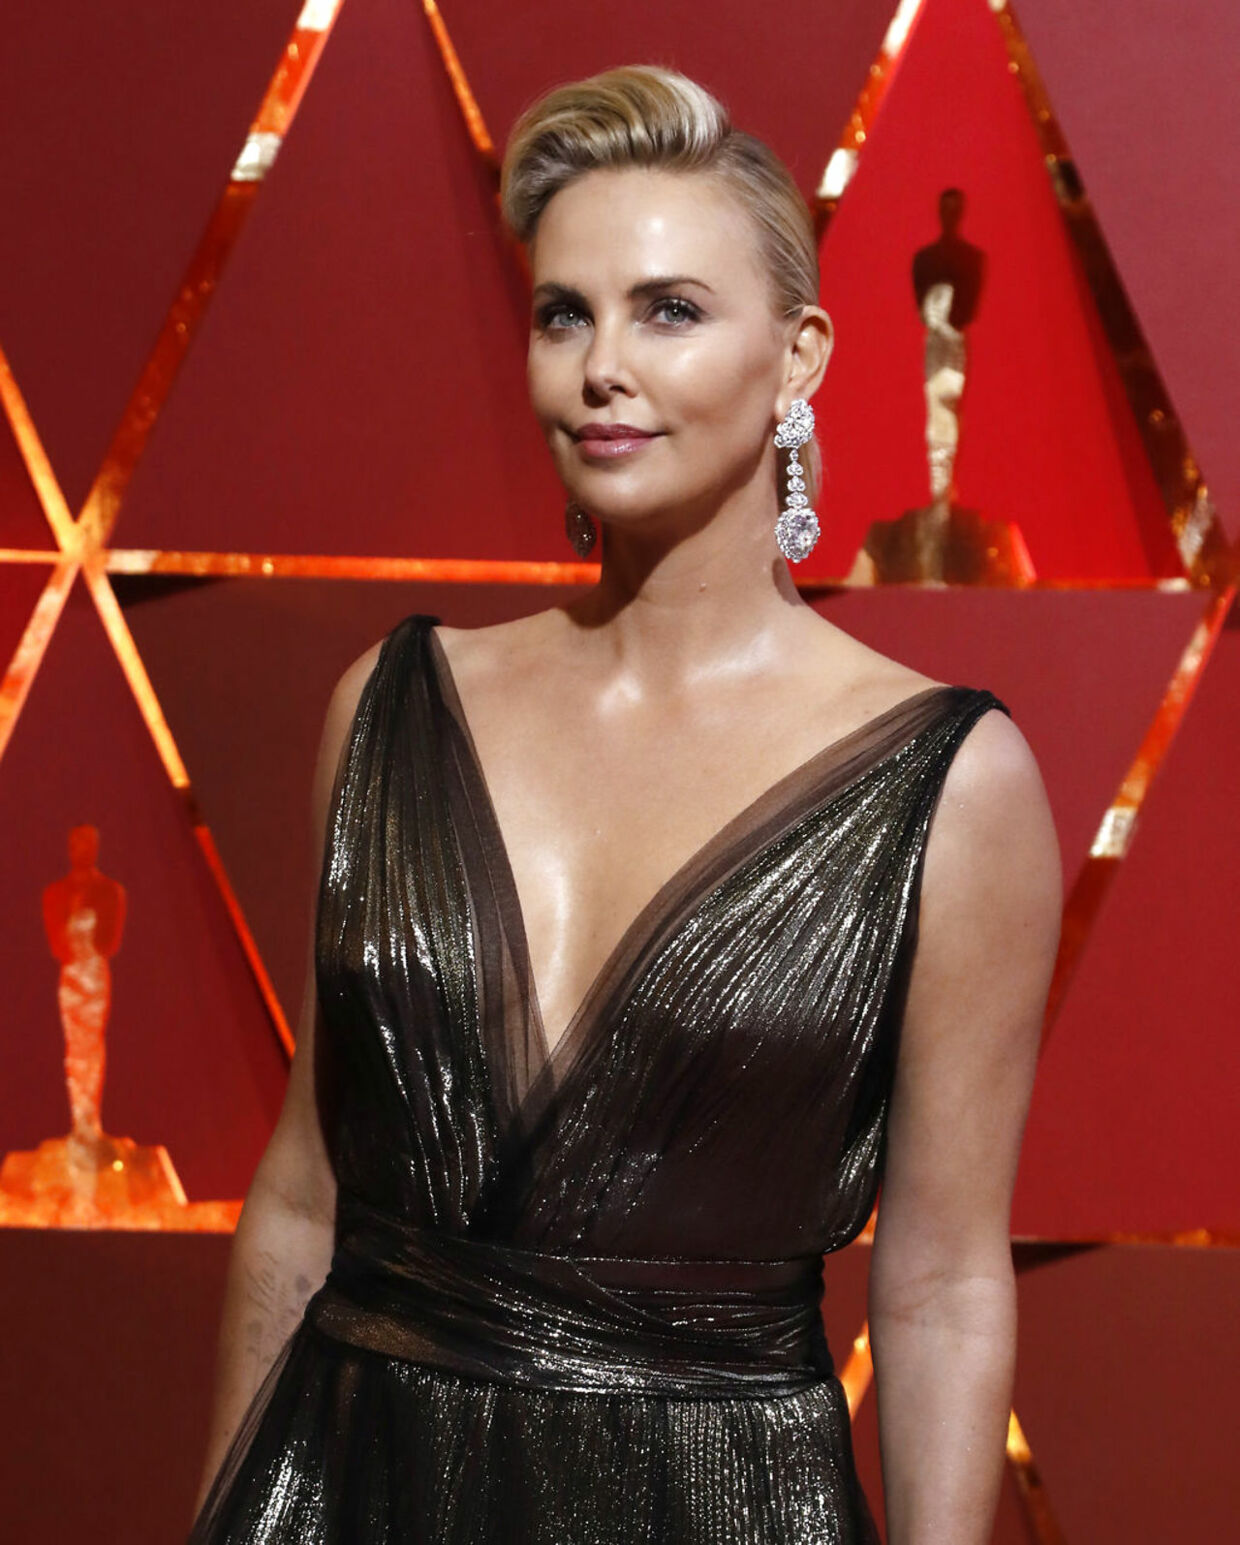 89th Academy Awards - Oscars Red Carpet Arrivals - Hollywood, California, U.S. - 26/02/17 - Charlize Theron wears Dior. REUTERS/Mario Anzuoni